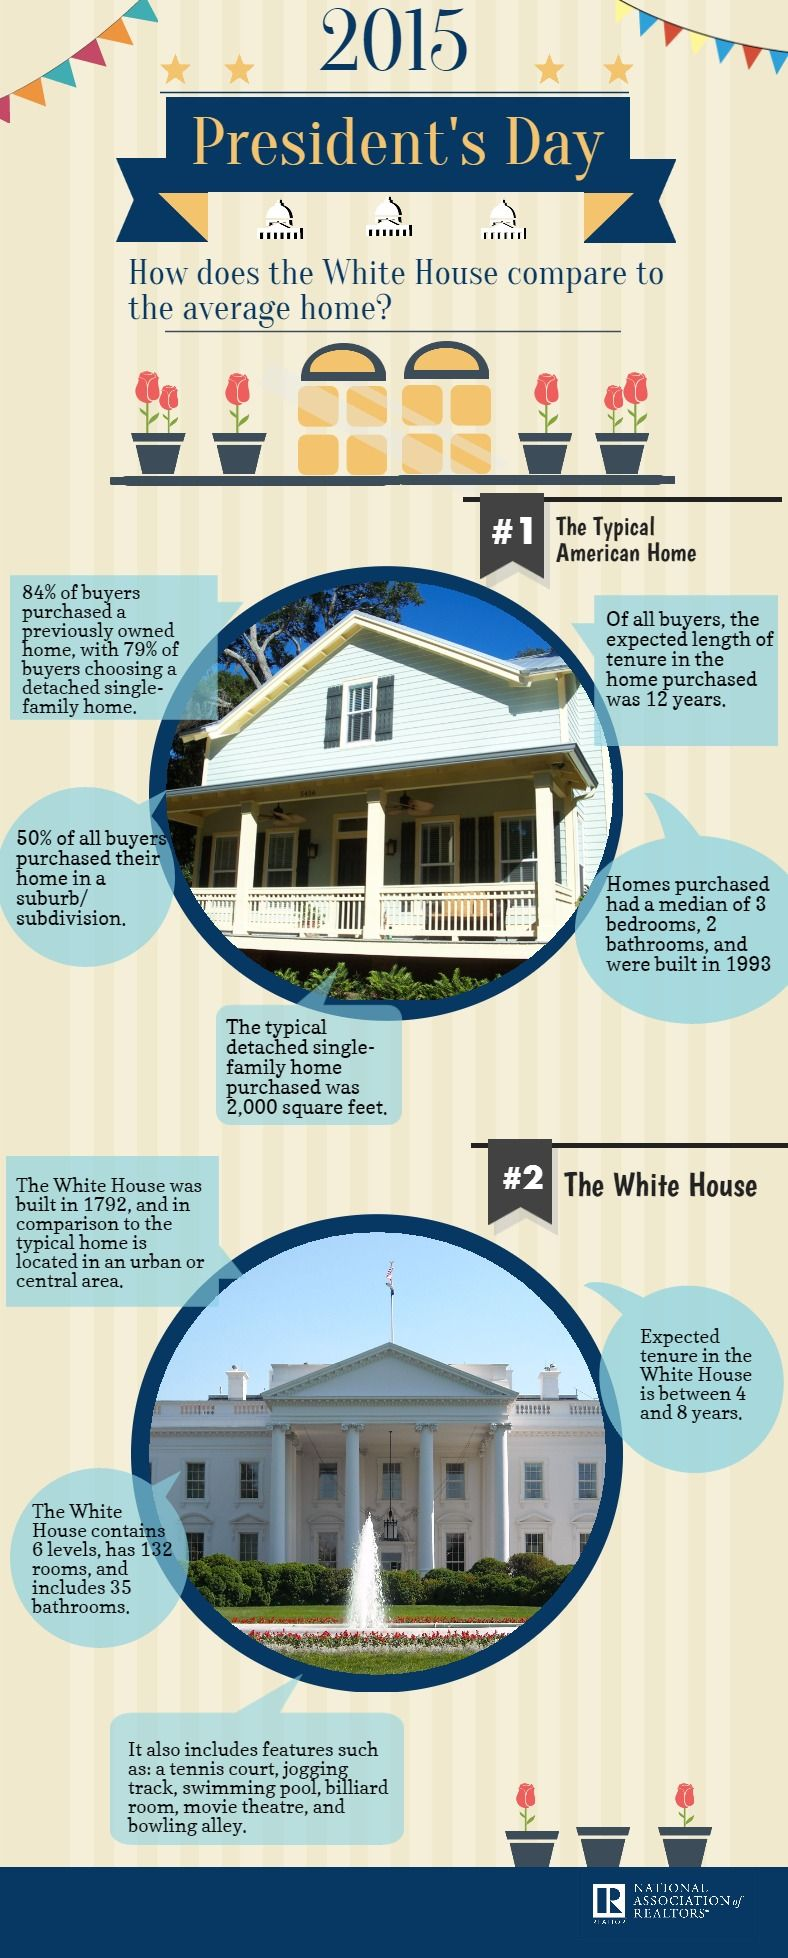 how does the white house compare to the typical home bought by the